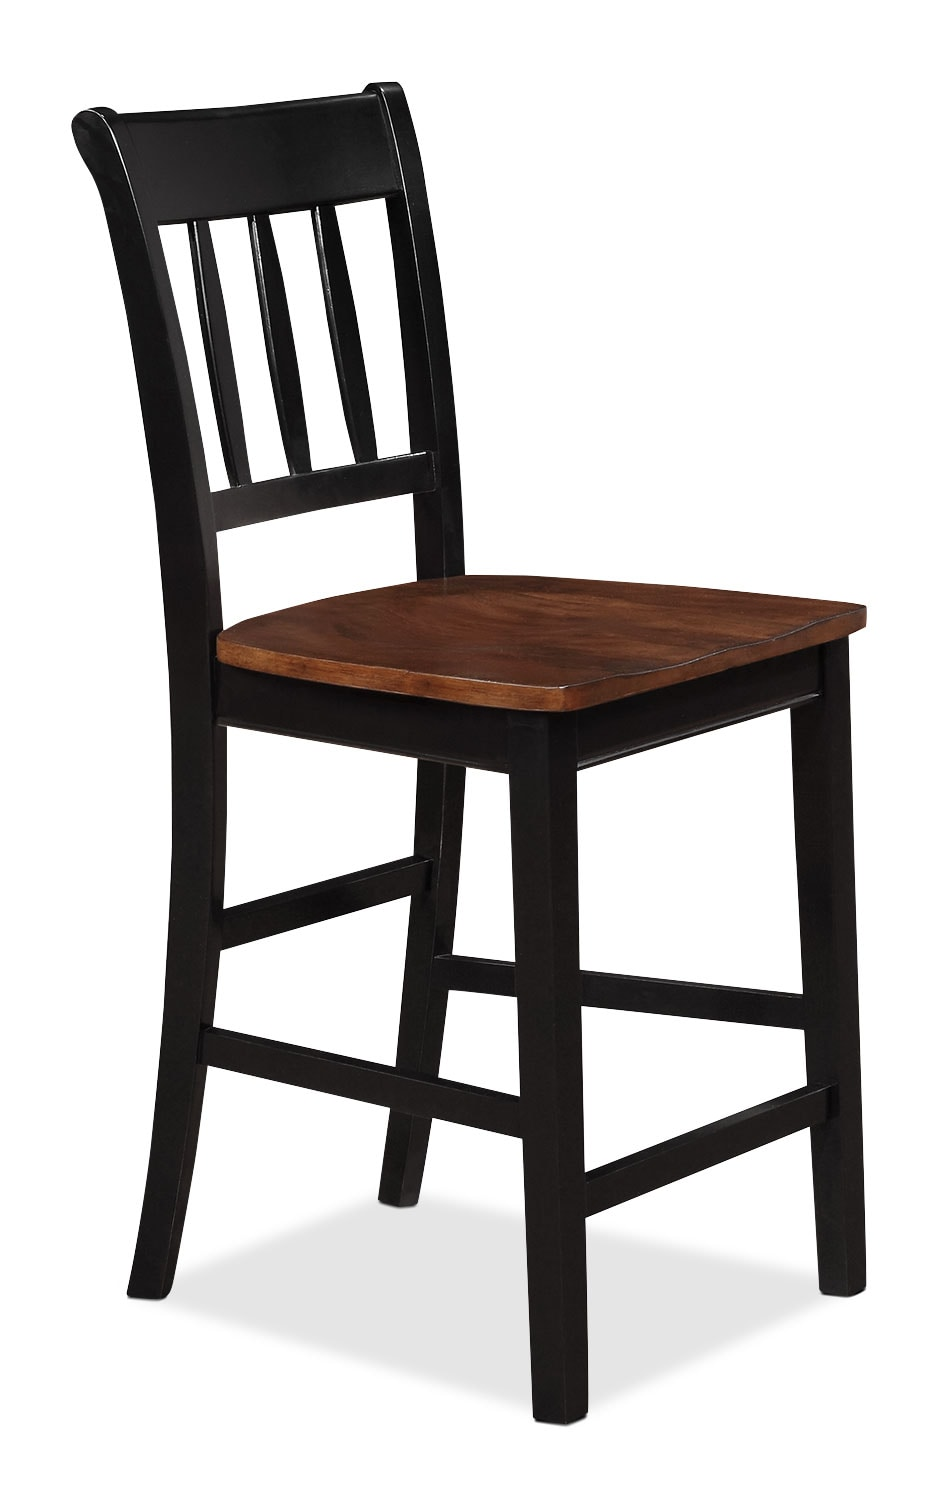 Nyla Counter-Height Dining Chair – Black and Cherry